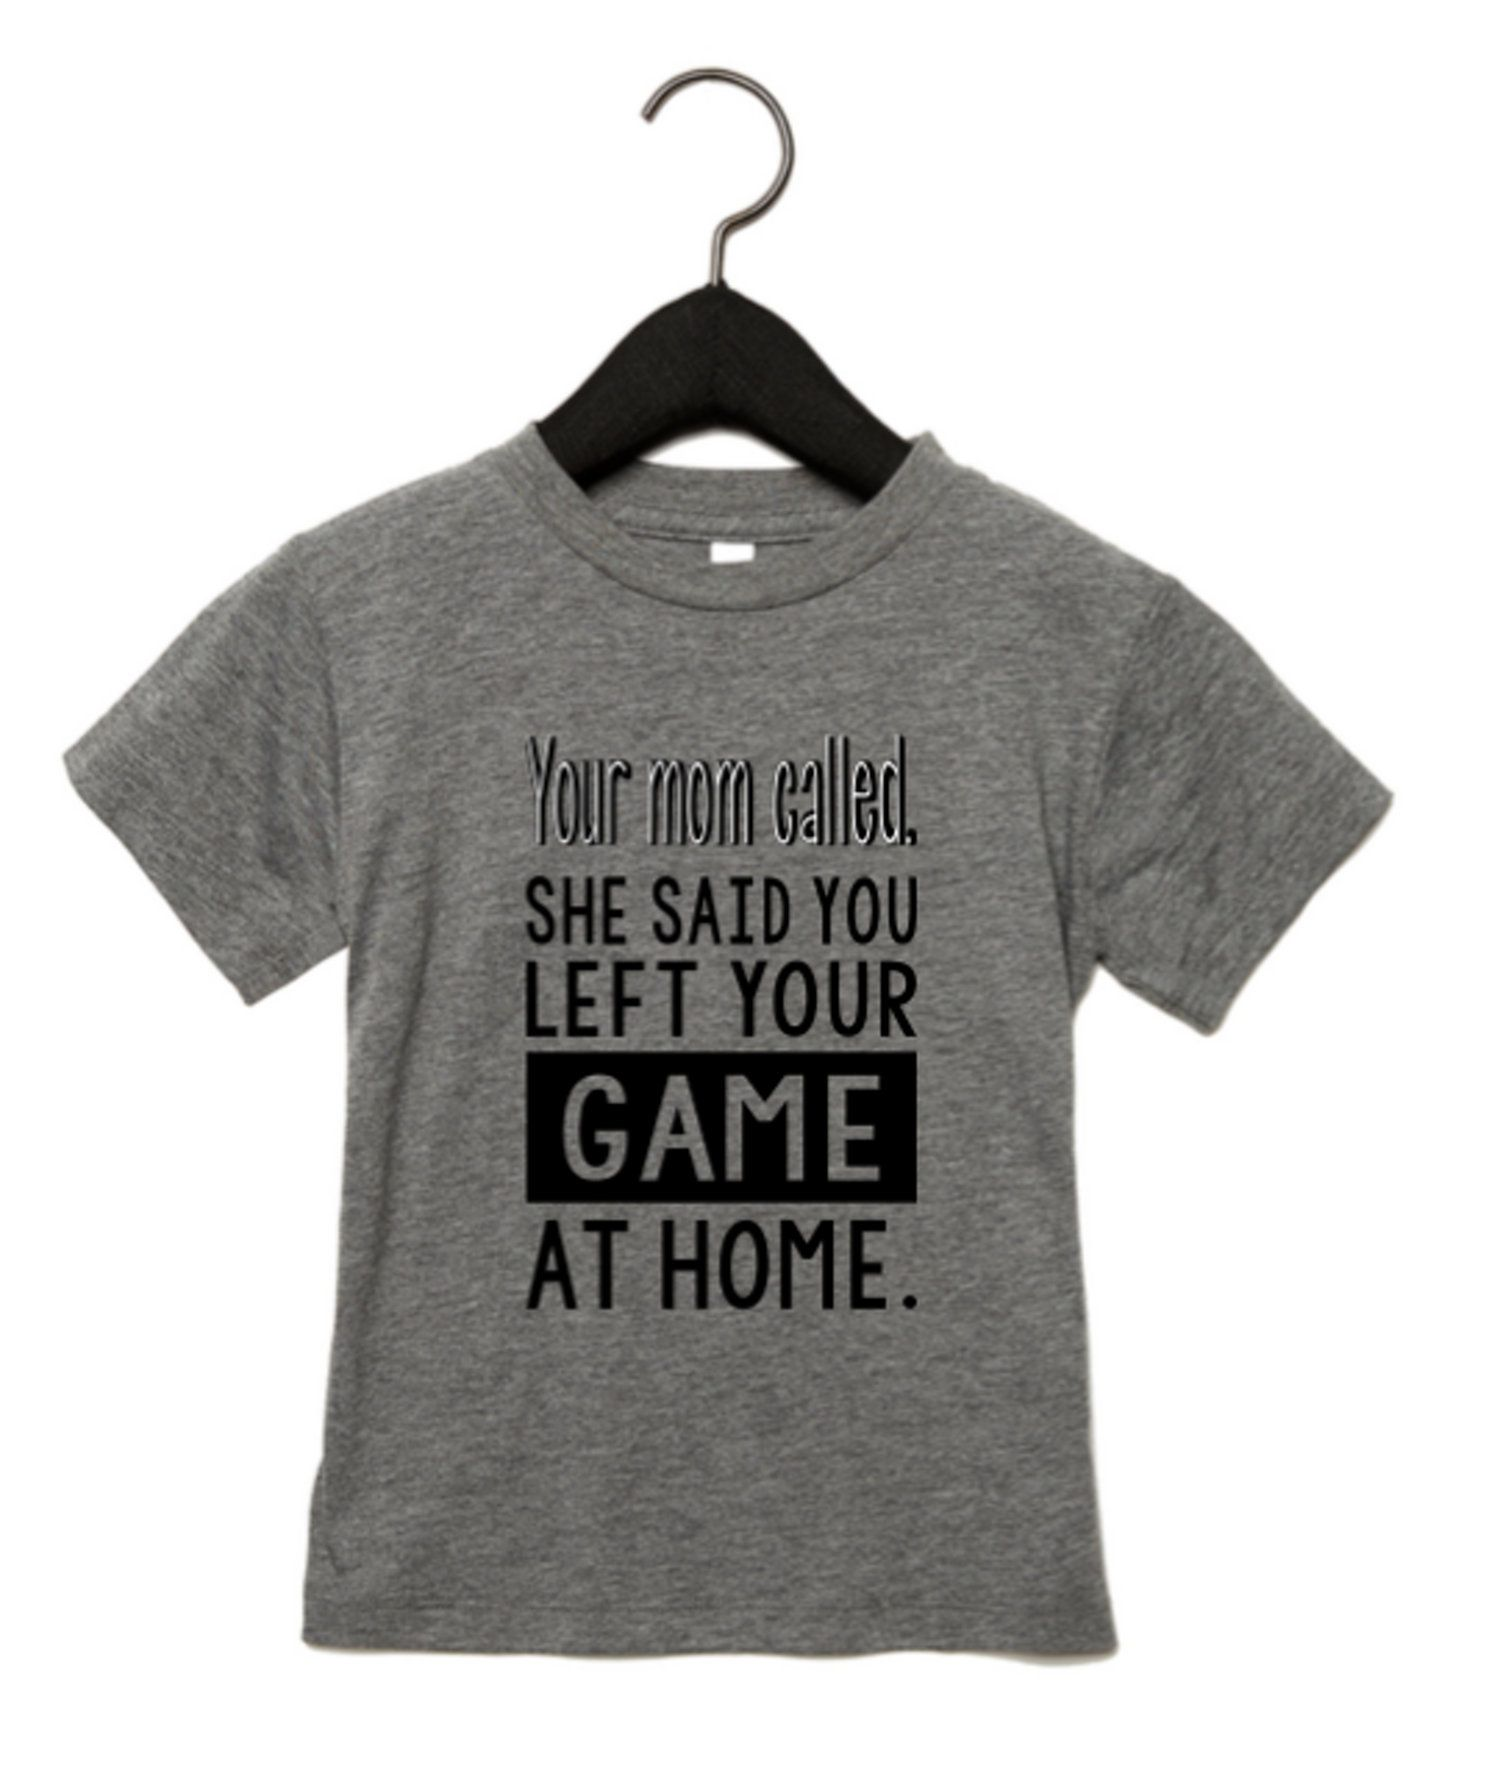 58228513d She said you left your game at home. Unisex Kids and Adult Shirt Sports by  TheTatteredSparrow on Etsy